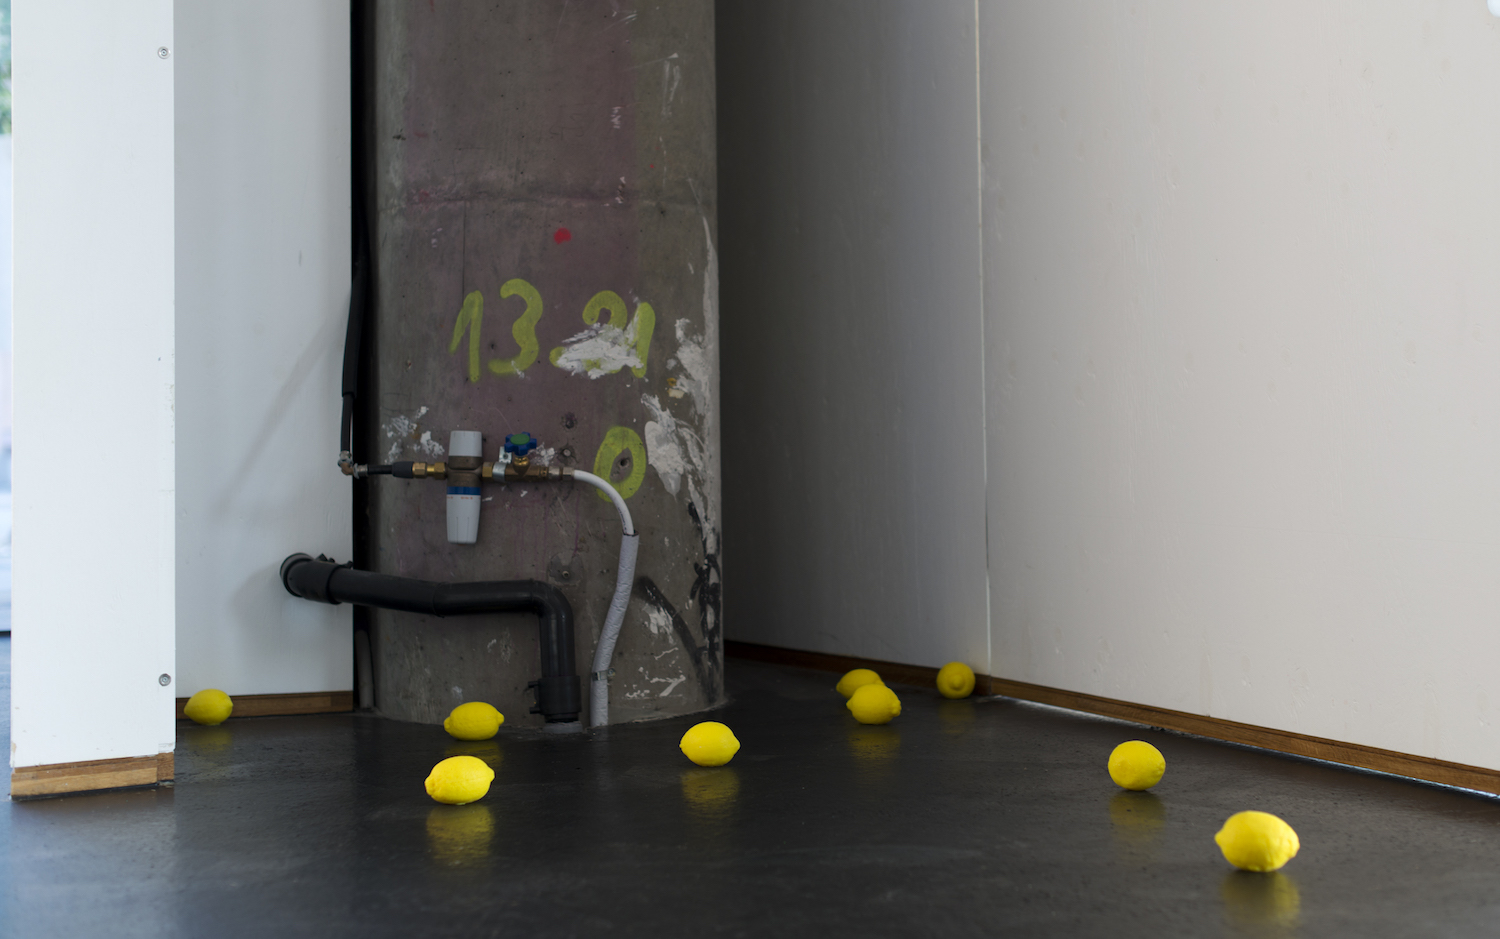 Charlie Godet Thomas, Virtues in Disarray, 2013-2017. Nine lemons, cast rubber, pigment and lemon oil. Photographer: Nici Jost.